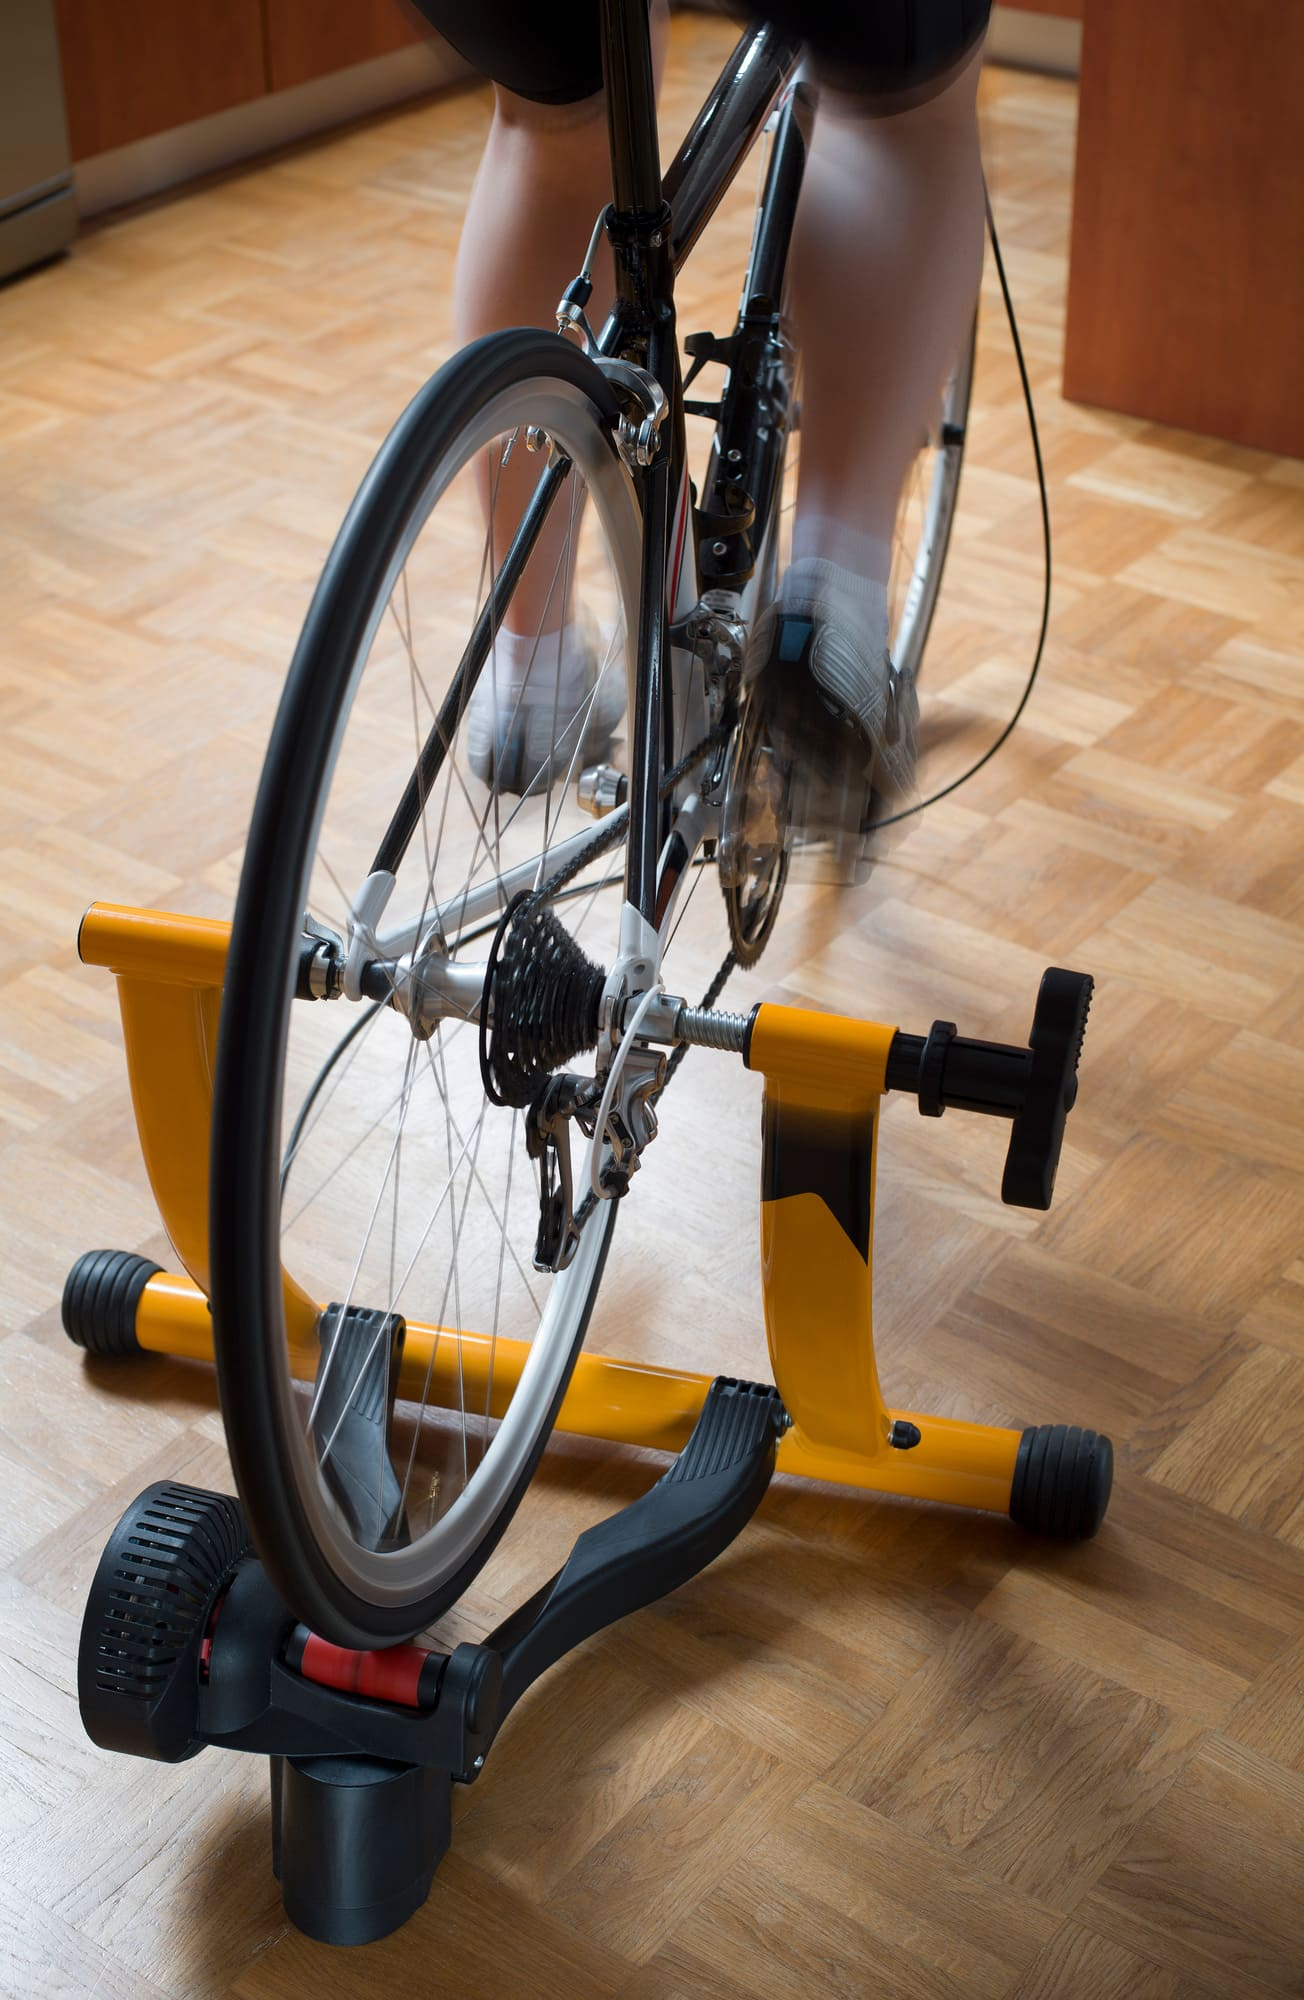 A bike trainer that holds the back wheel, turning a road bike into a stationary bike